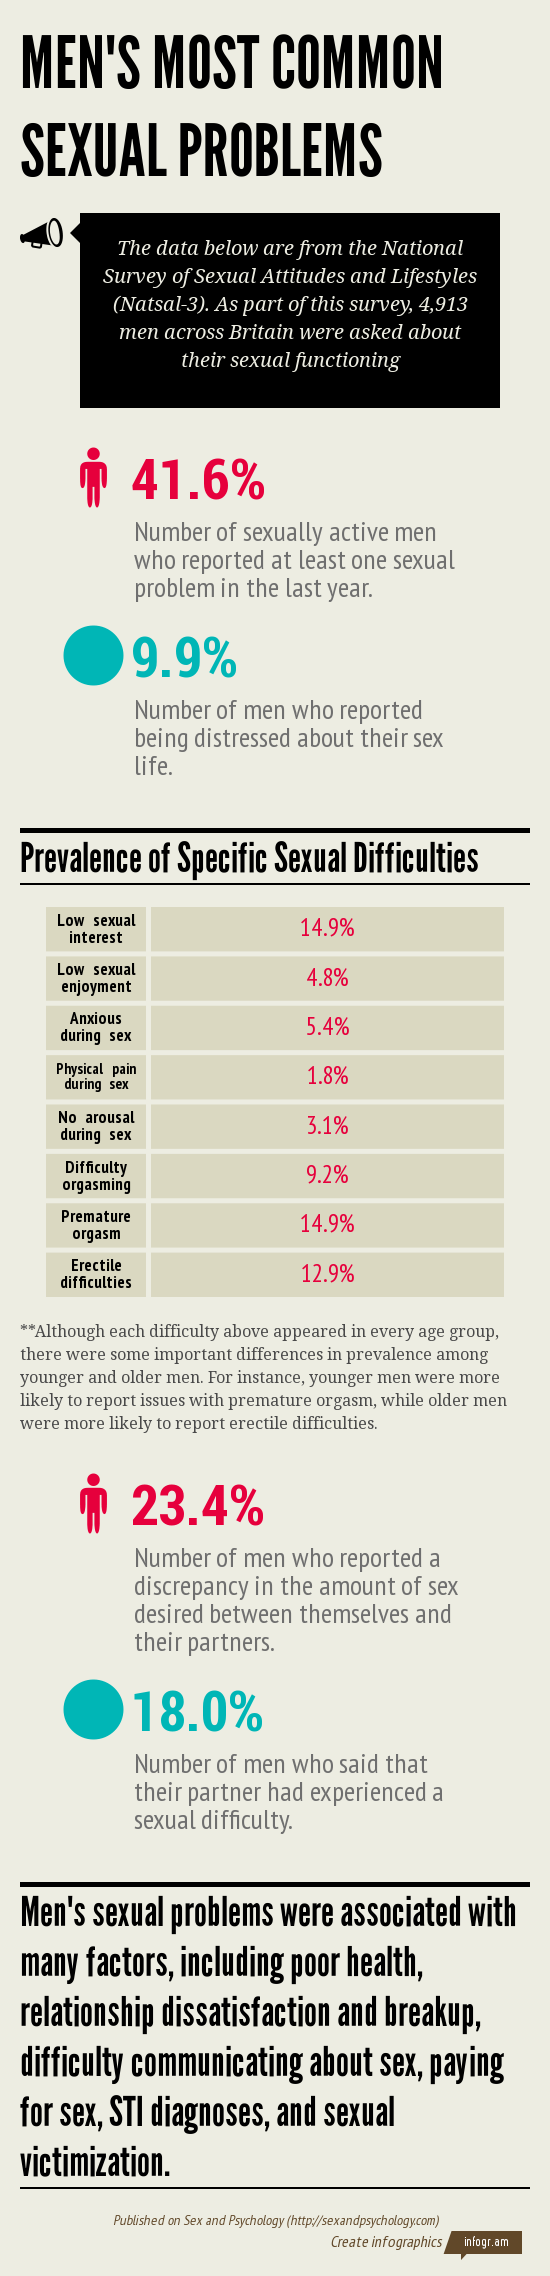 Infographic describing men's most common sexual problems according to the Natsal-3